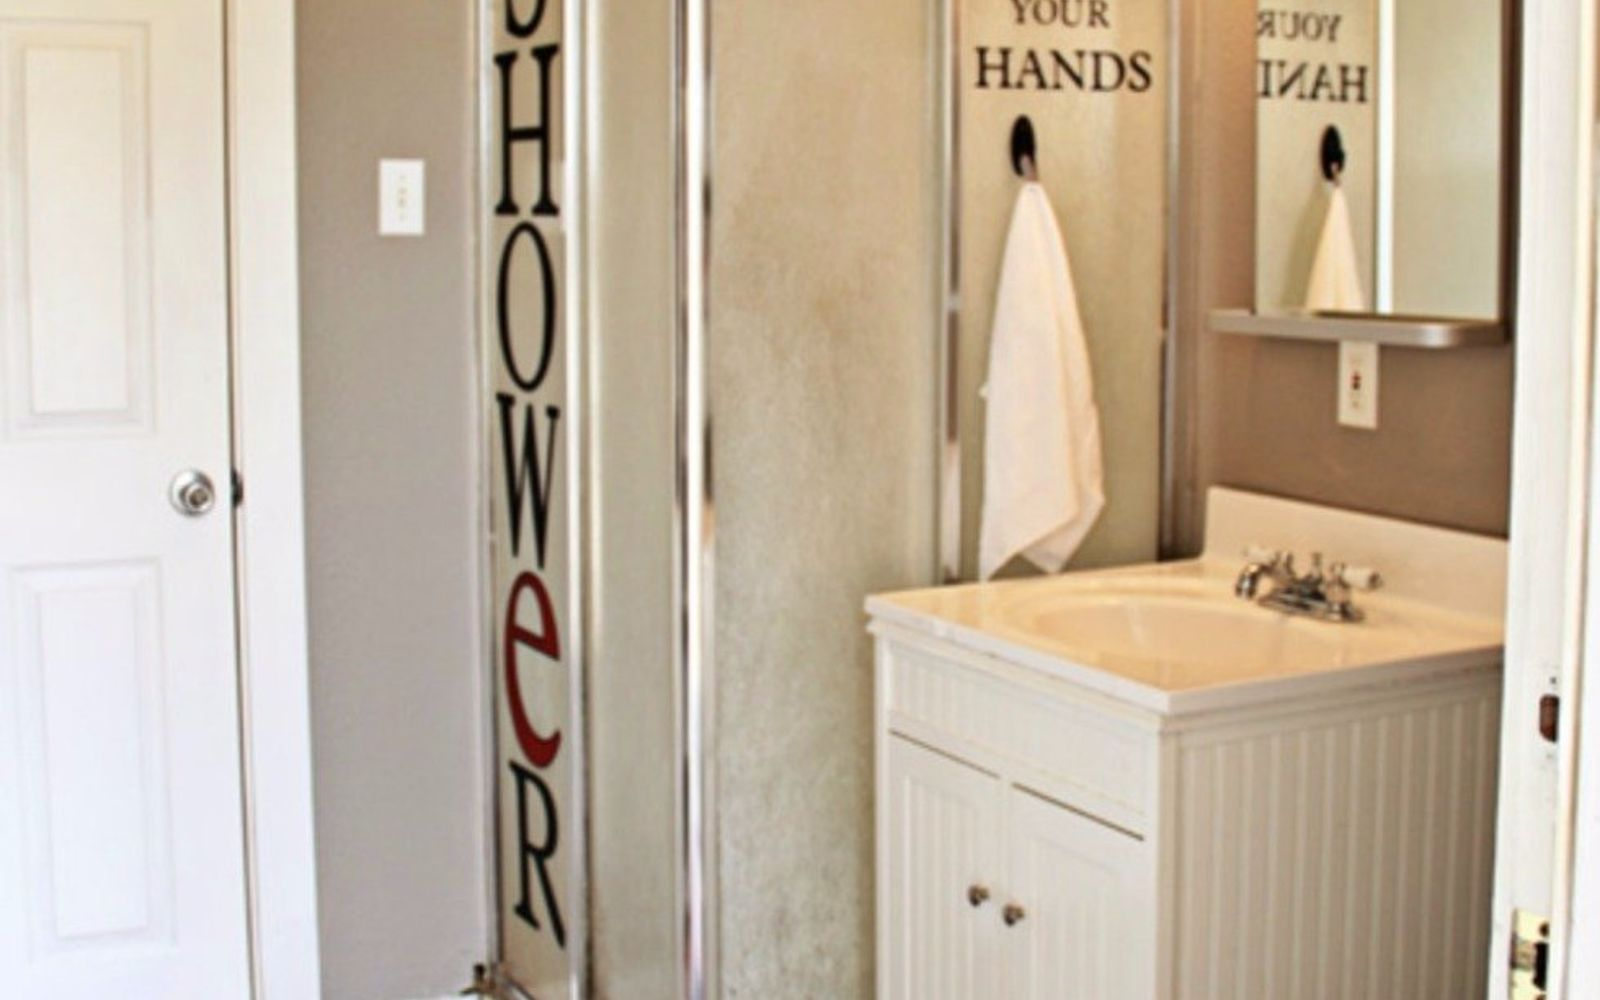 s give your kids the coolest bathroom with these 13 jaw dropping ideas, bathroom ideas, Add some funny stencils to keep them smiling